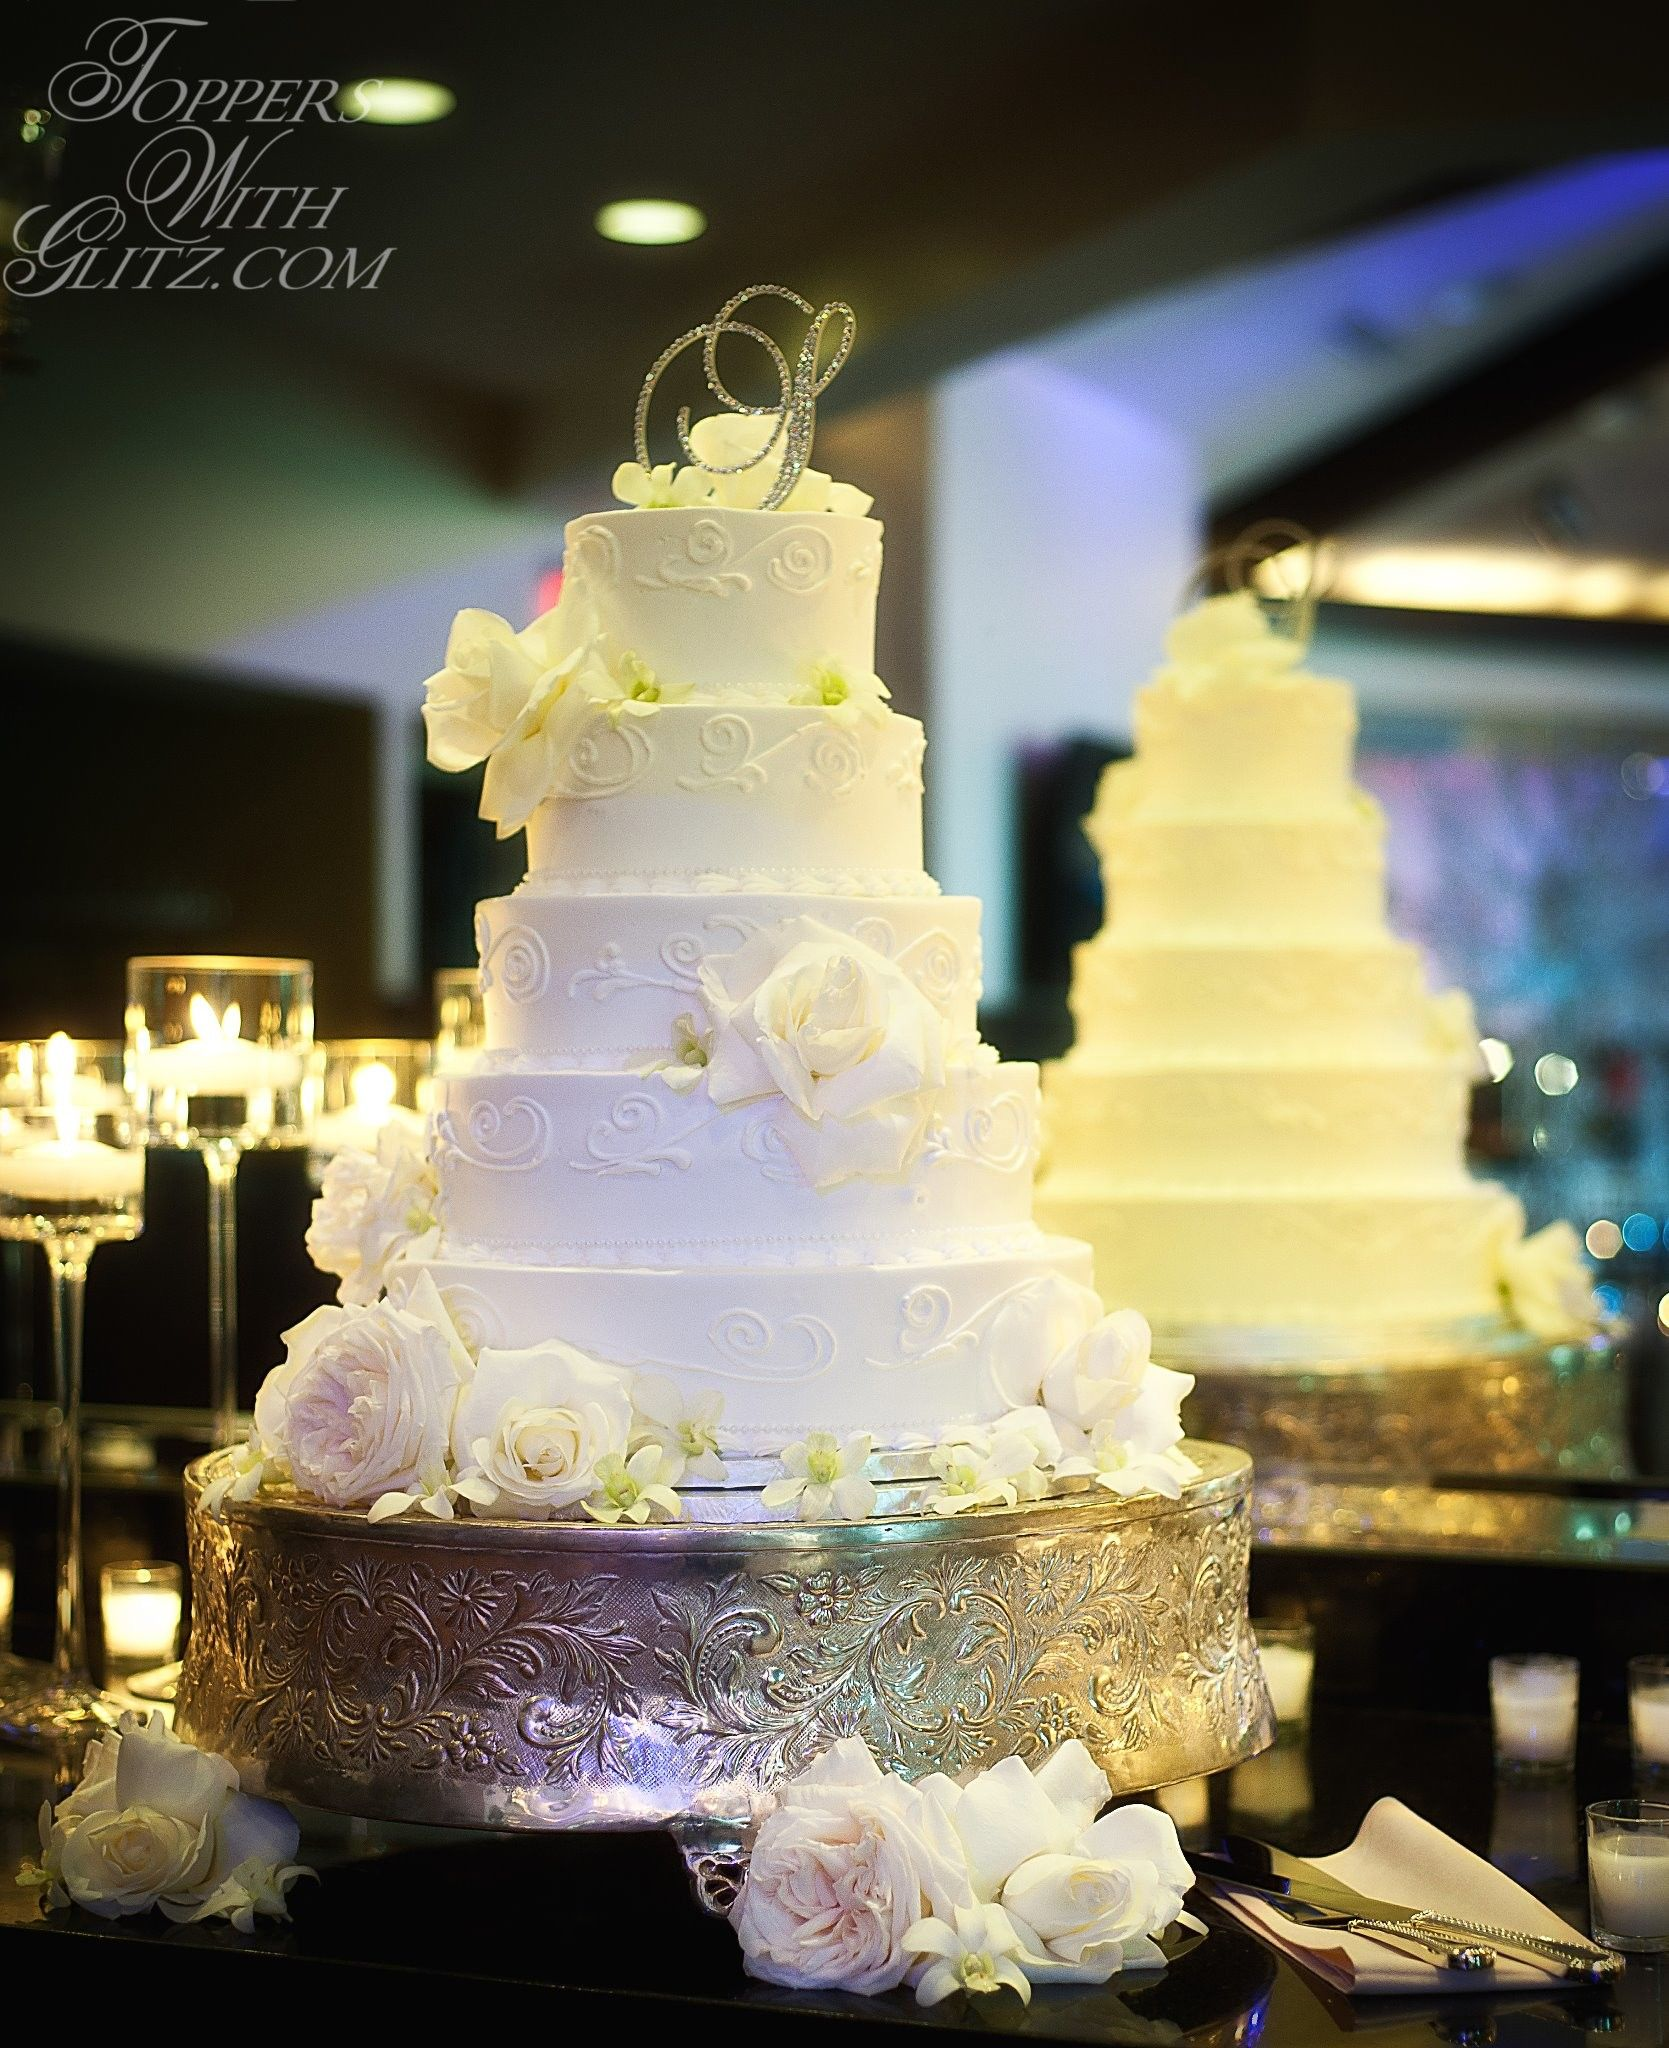 Single letter initial cake topper. Beautiful cake table! | Toppers ...